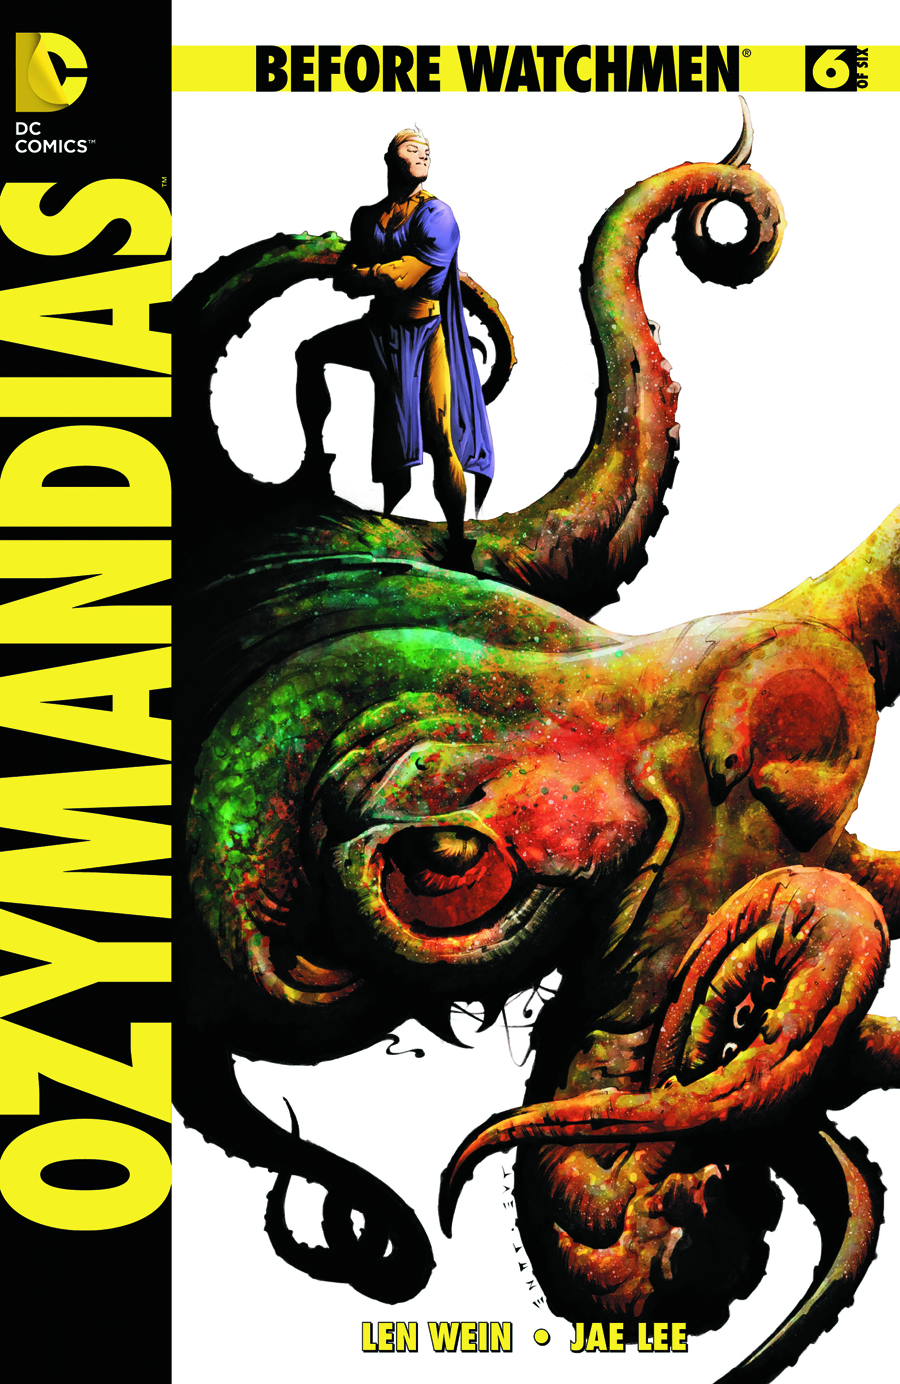 BEFORE WATCHMEN OZYMANDIAS #6 (OF 6)